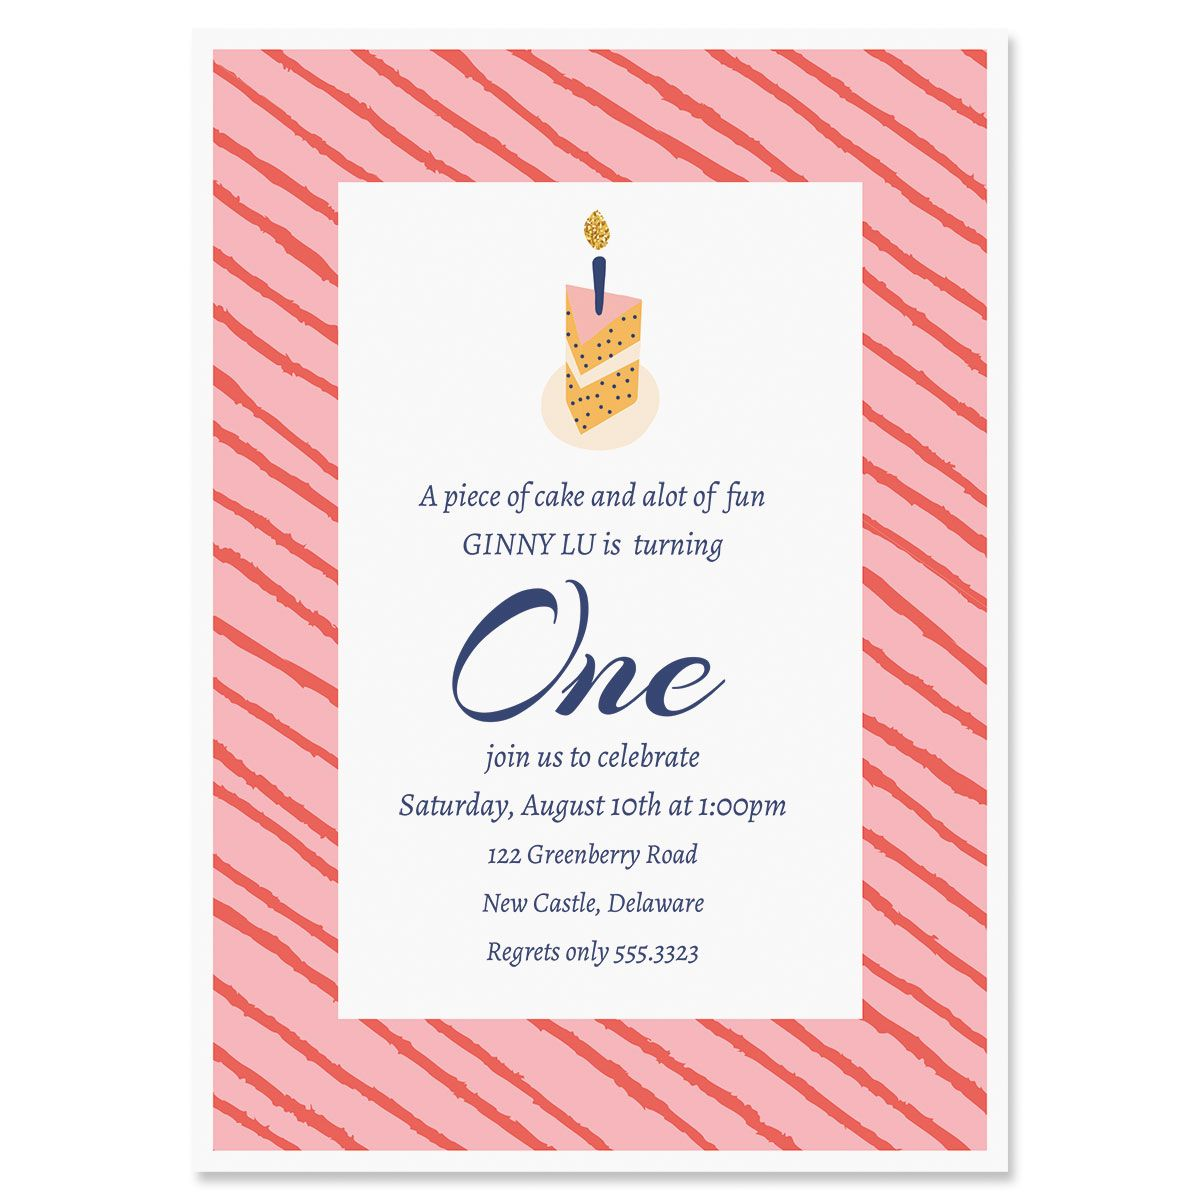 Personalized Piece of Cake Birthday Invitation